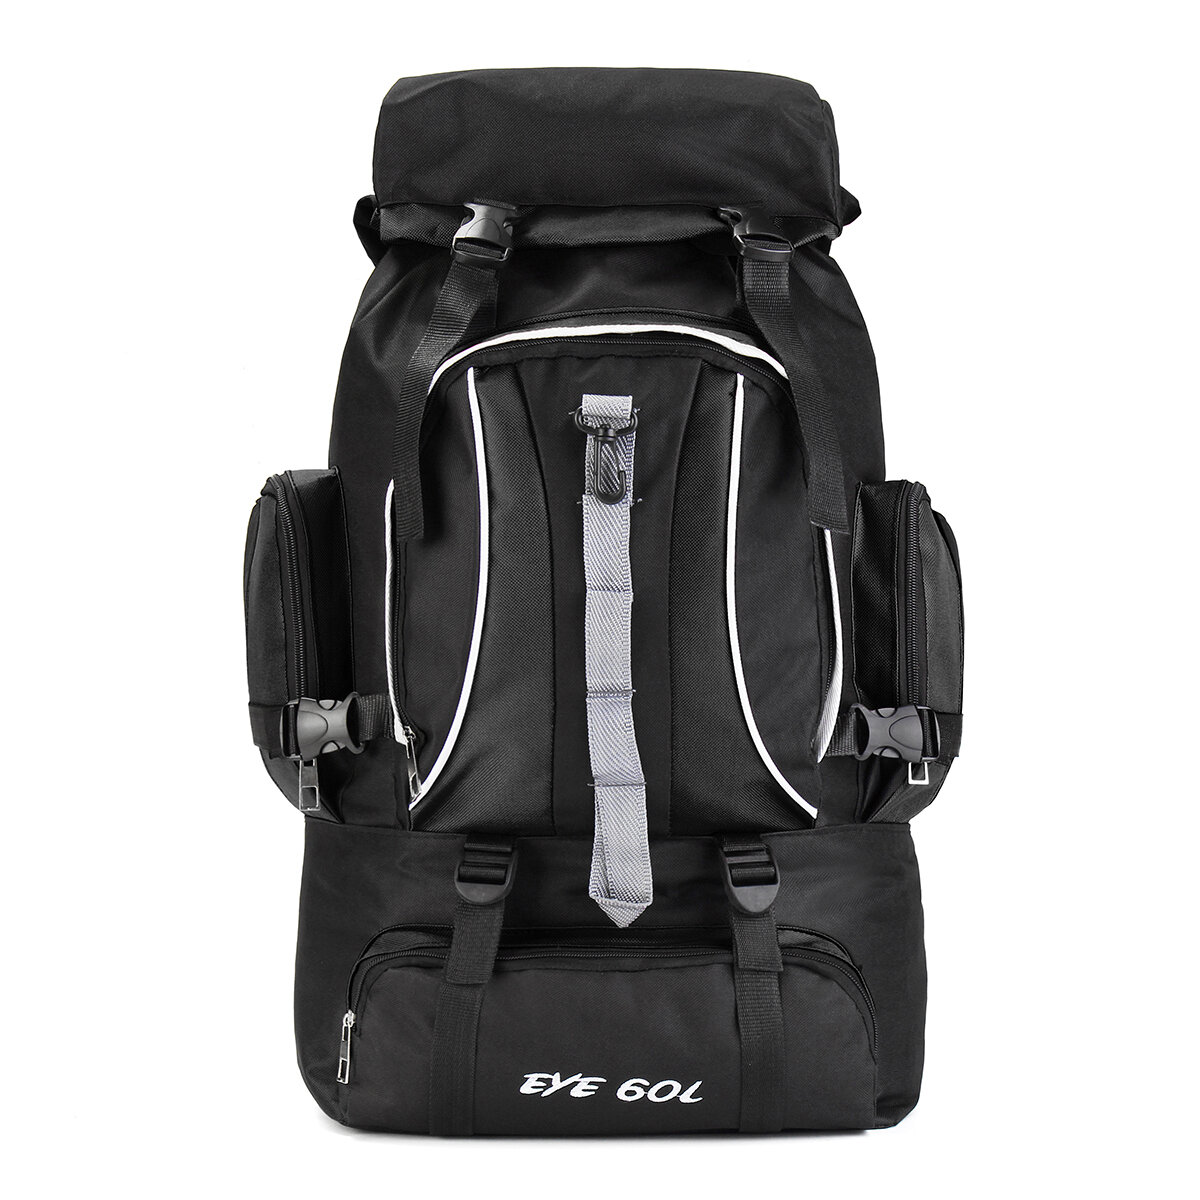 6507a7a3bd 60L Outdoor Camping Hiking Backpack Sports Travel Waterproof Rucksack Large  Bag COD